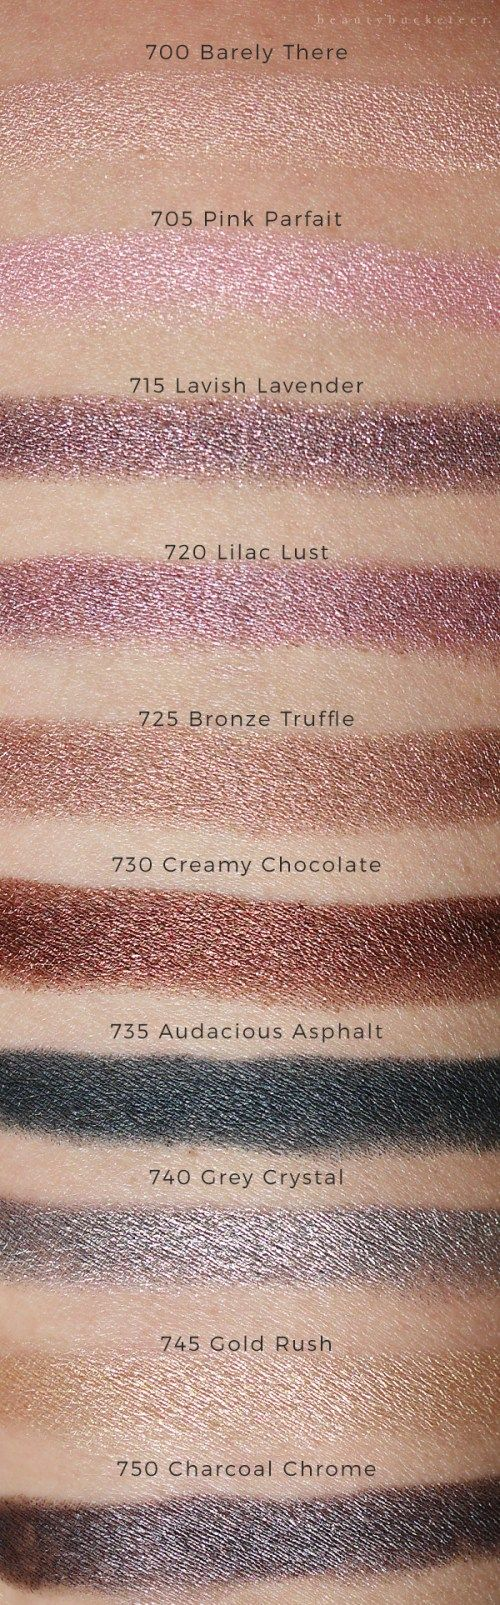 Maybelline Color Tattoo Crayons Swatches for Barely There, Pink Parfait, Lavish Lavender, Lilac Lust, Bronze Truffle, Creamy Chocolate, Audacious Asphalt, Grey Crystal, Gold Rush & Charcoal Chrome